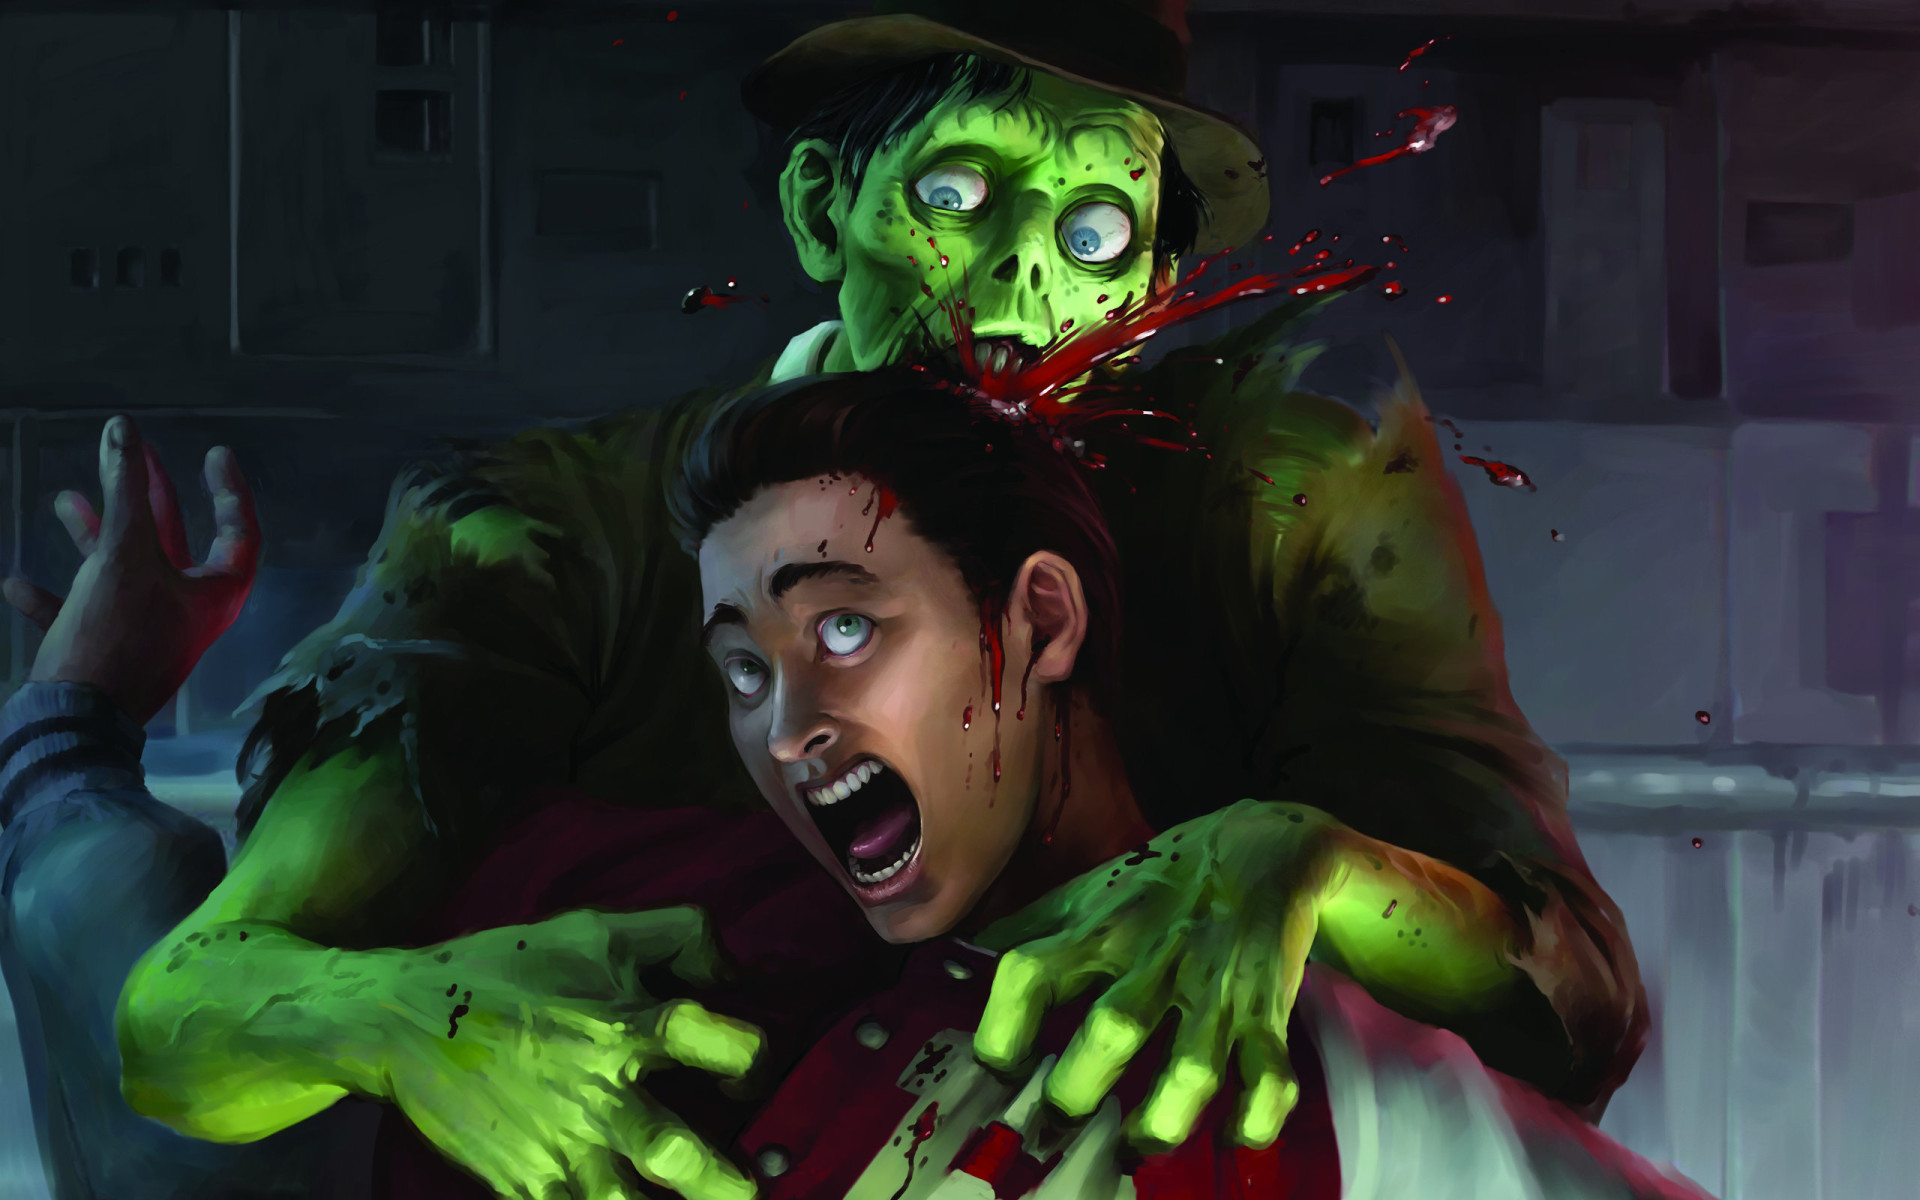 Games_Stubbs_the_Zombie_022158_.jpg - -